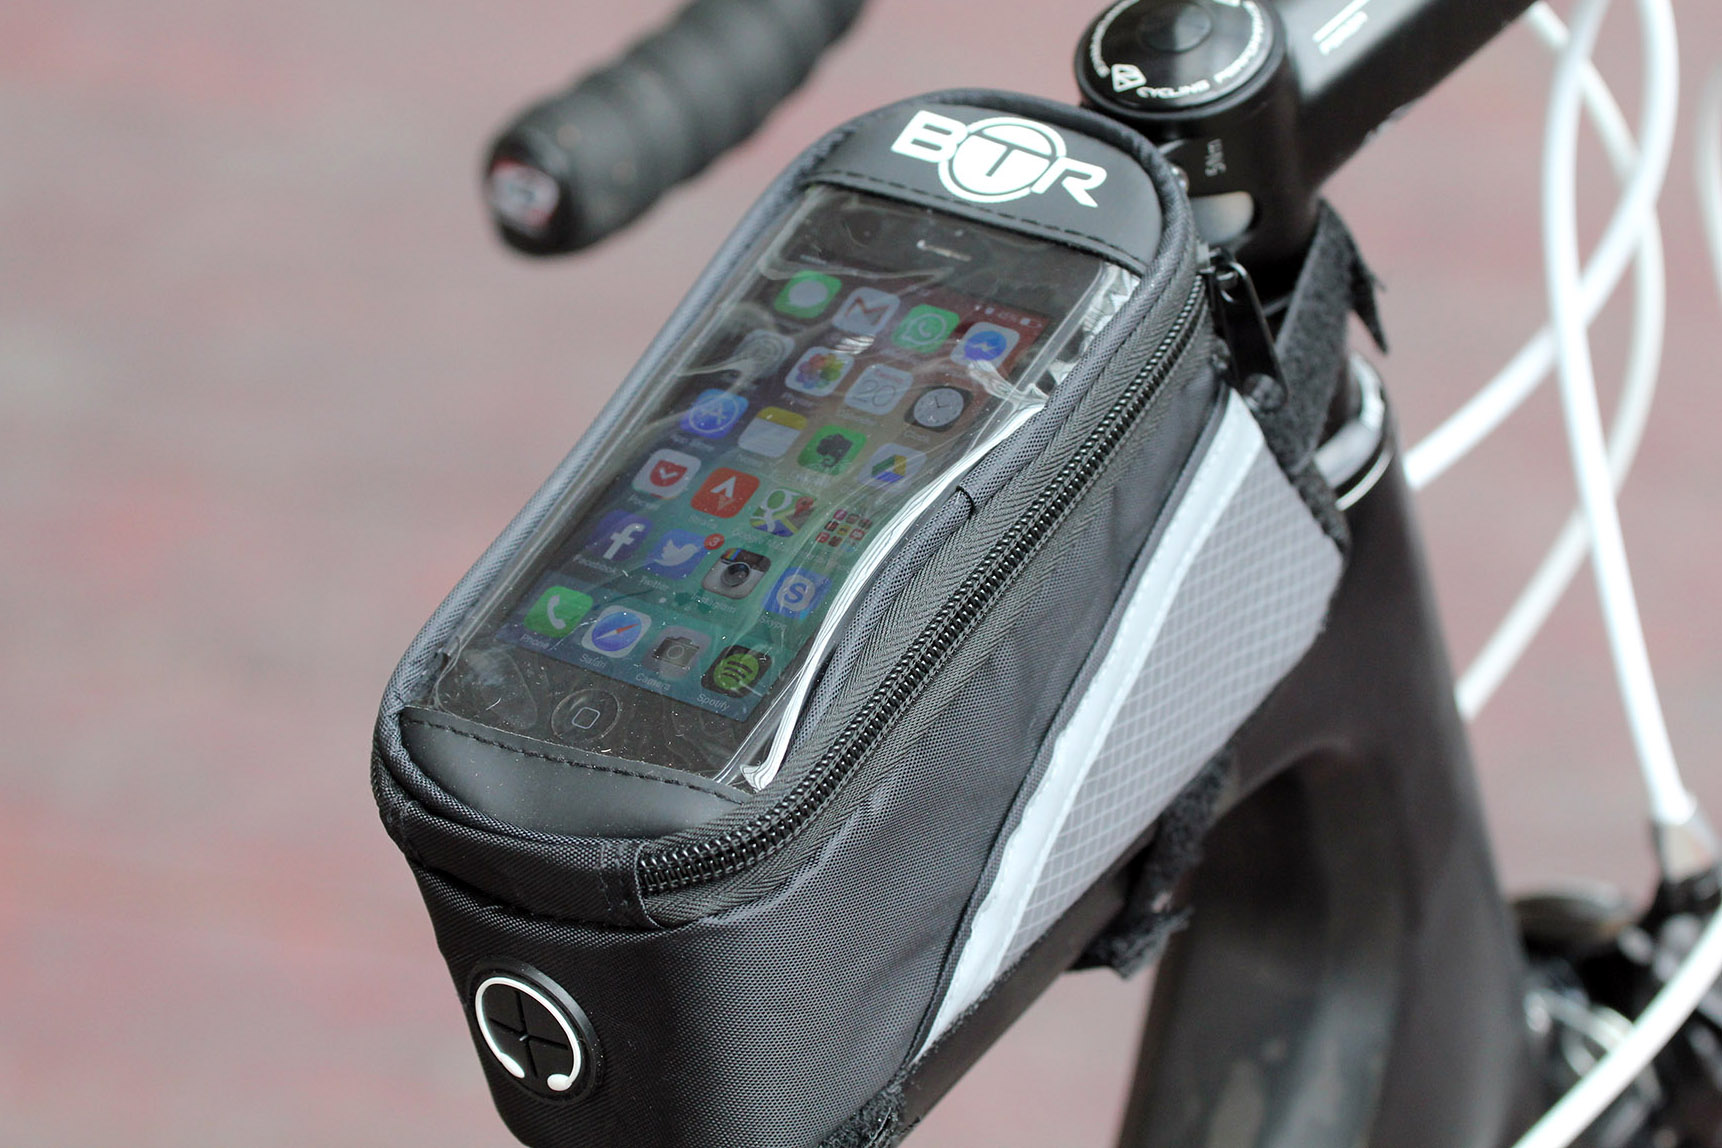 7 Btr Water Resistant Frame Bike Bag And Mobile Phone Holder Rockbros A 008 Handlebar Front Waterproof Pannier 3 4l Small Storage In